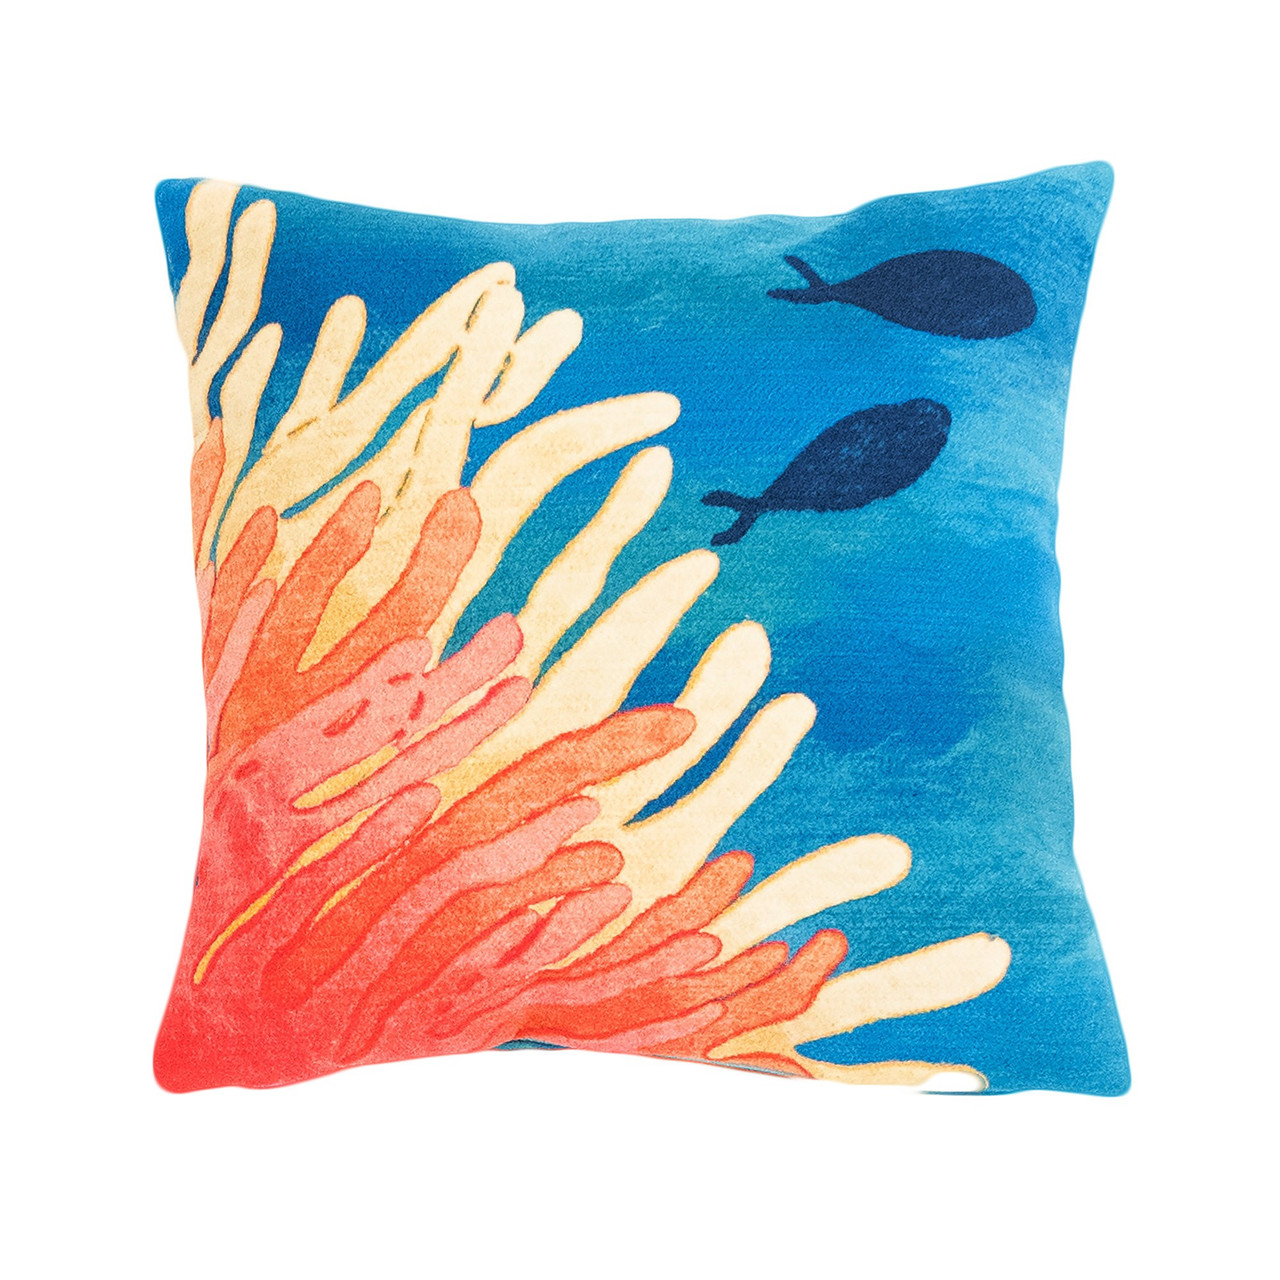 Visions Reef & Fish Indoor/Outdoor Throw Pillow - Square